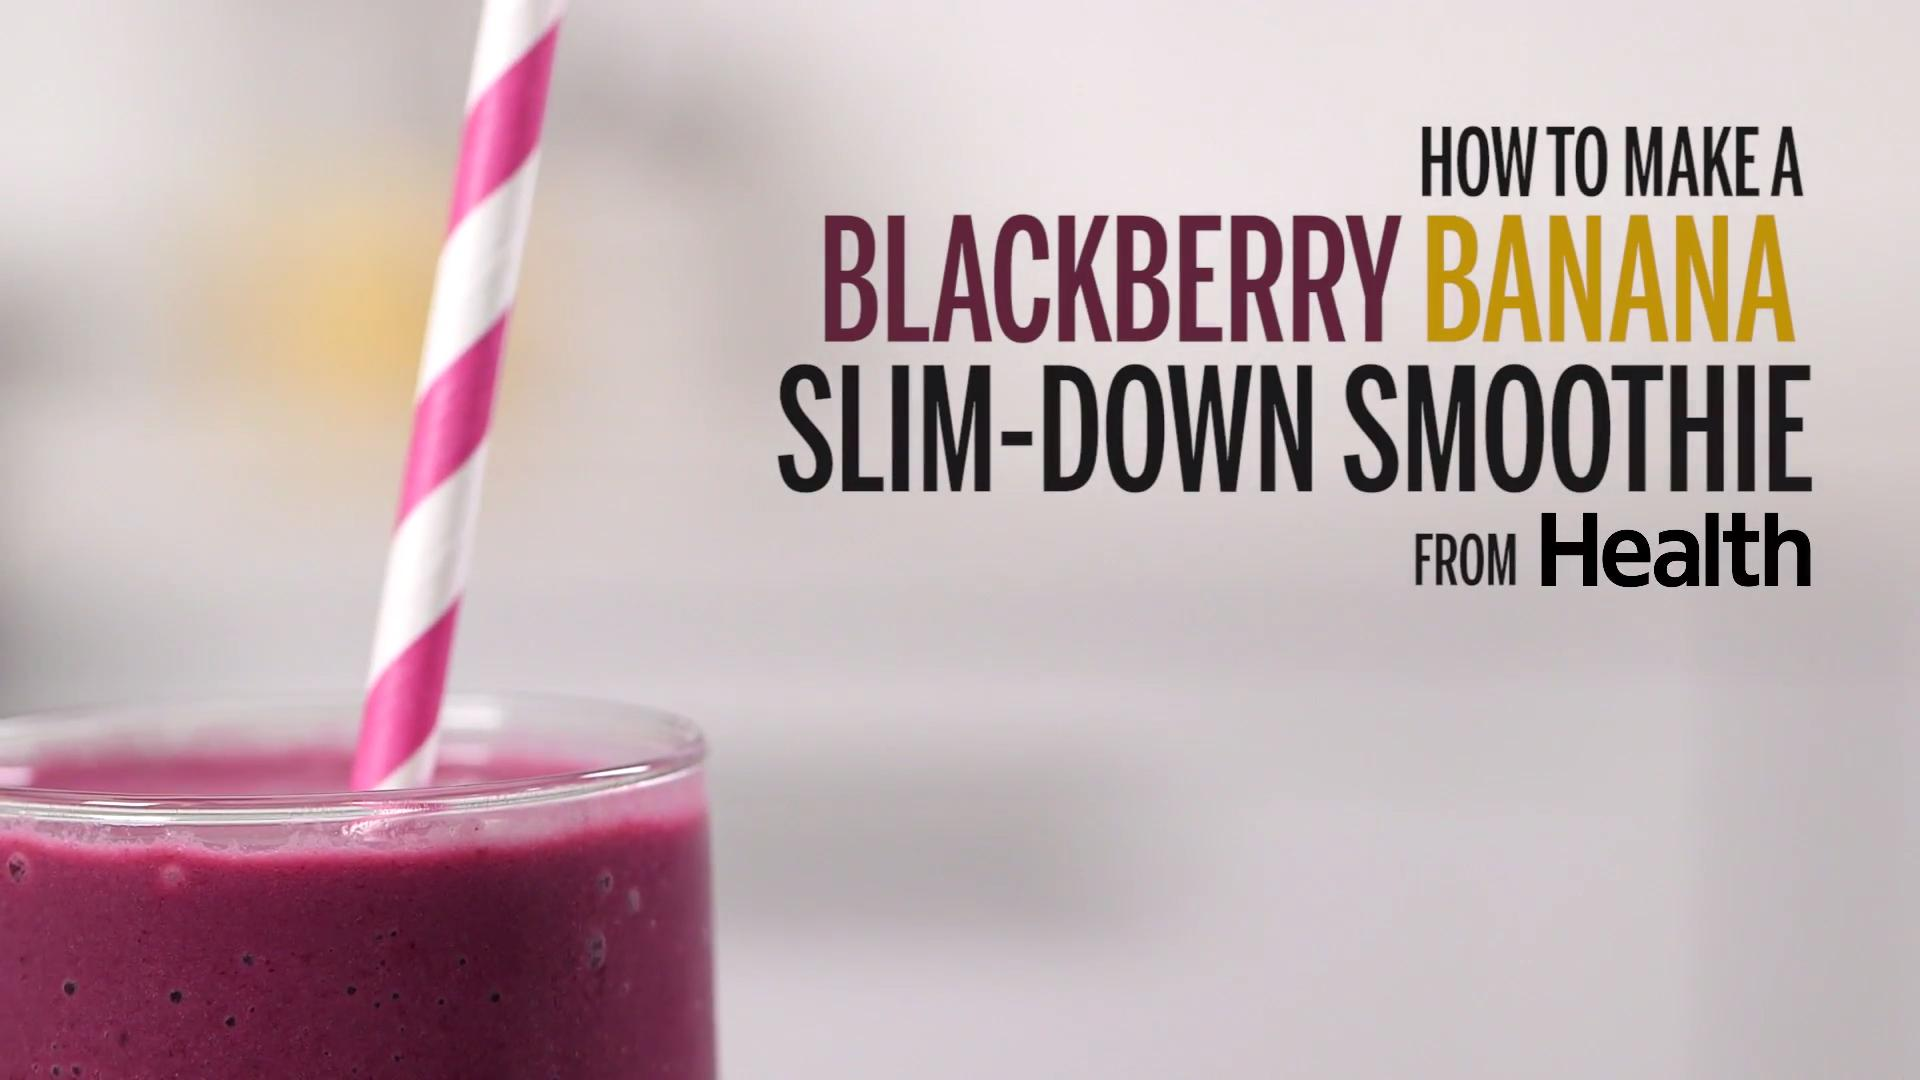 Blackberry-Banana Slim-Down Smoothie